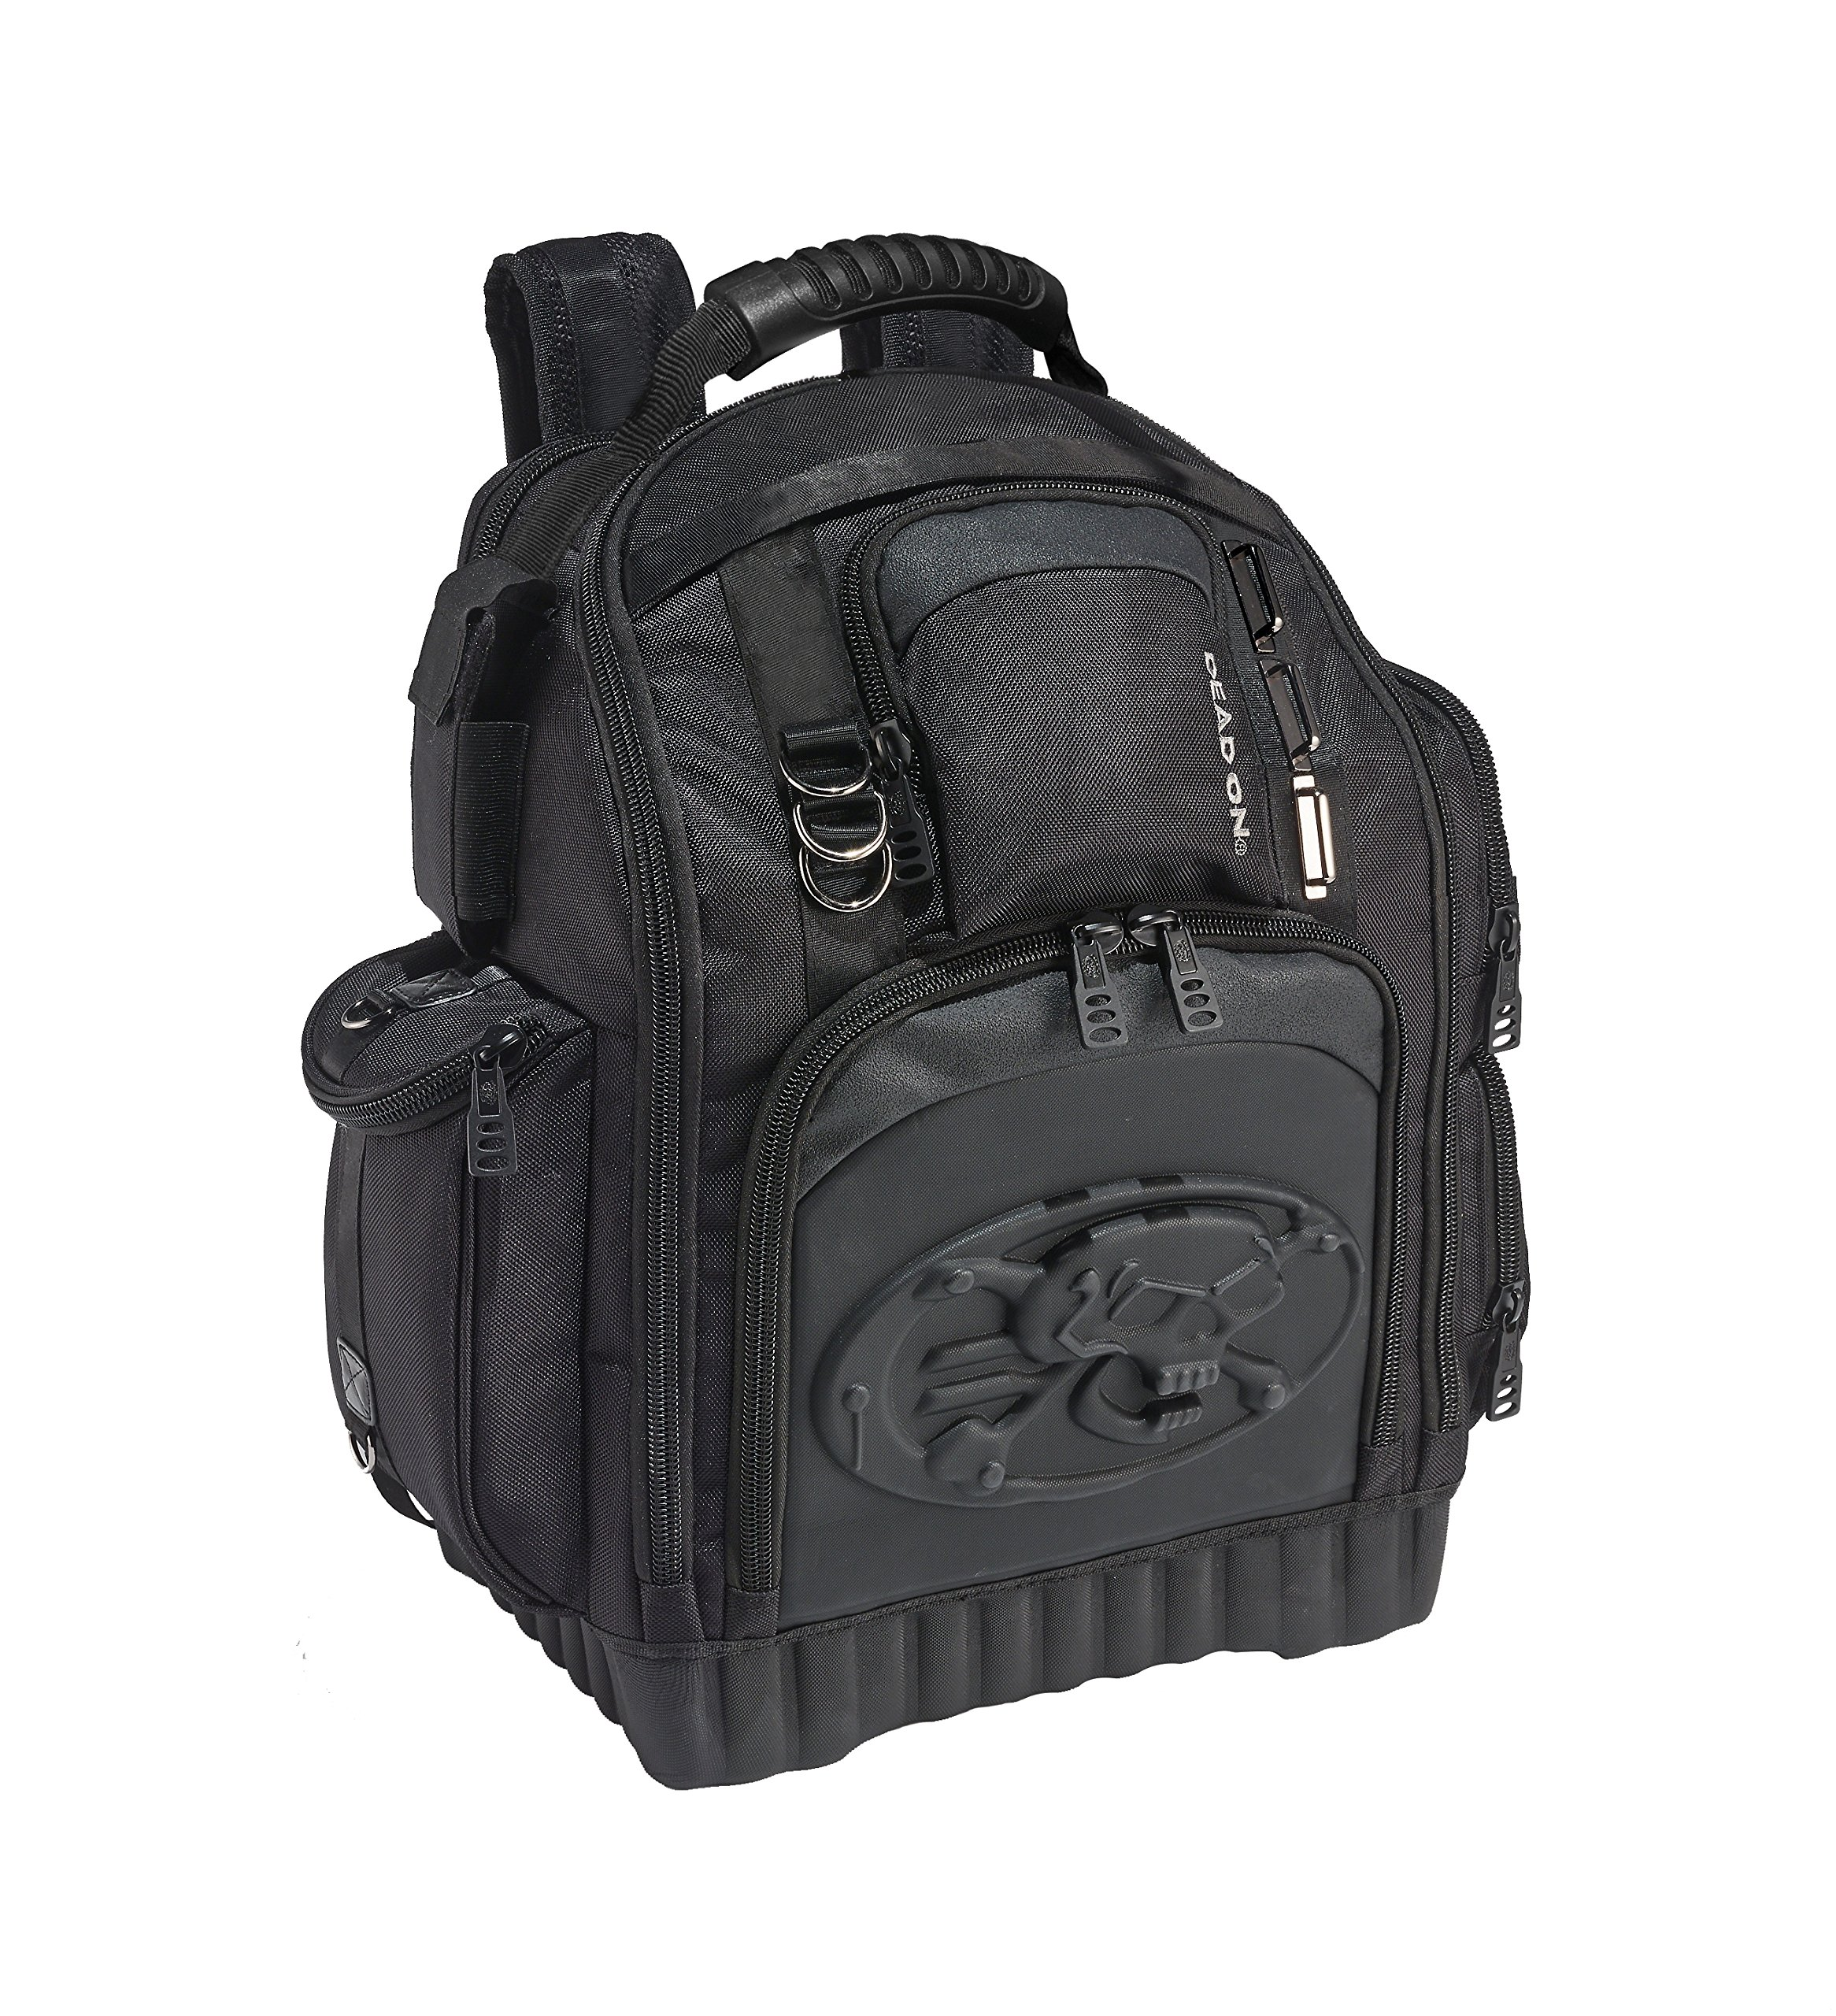 Dead On Tools DO-DES Gear Destroyer Tech Pack, Black